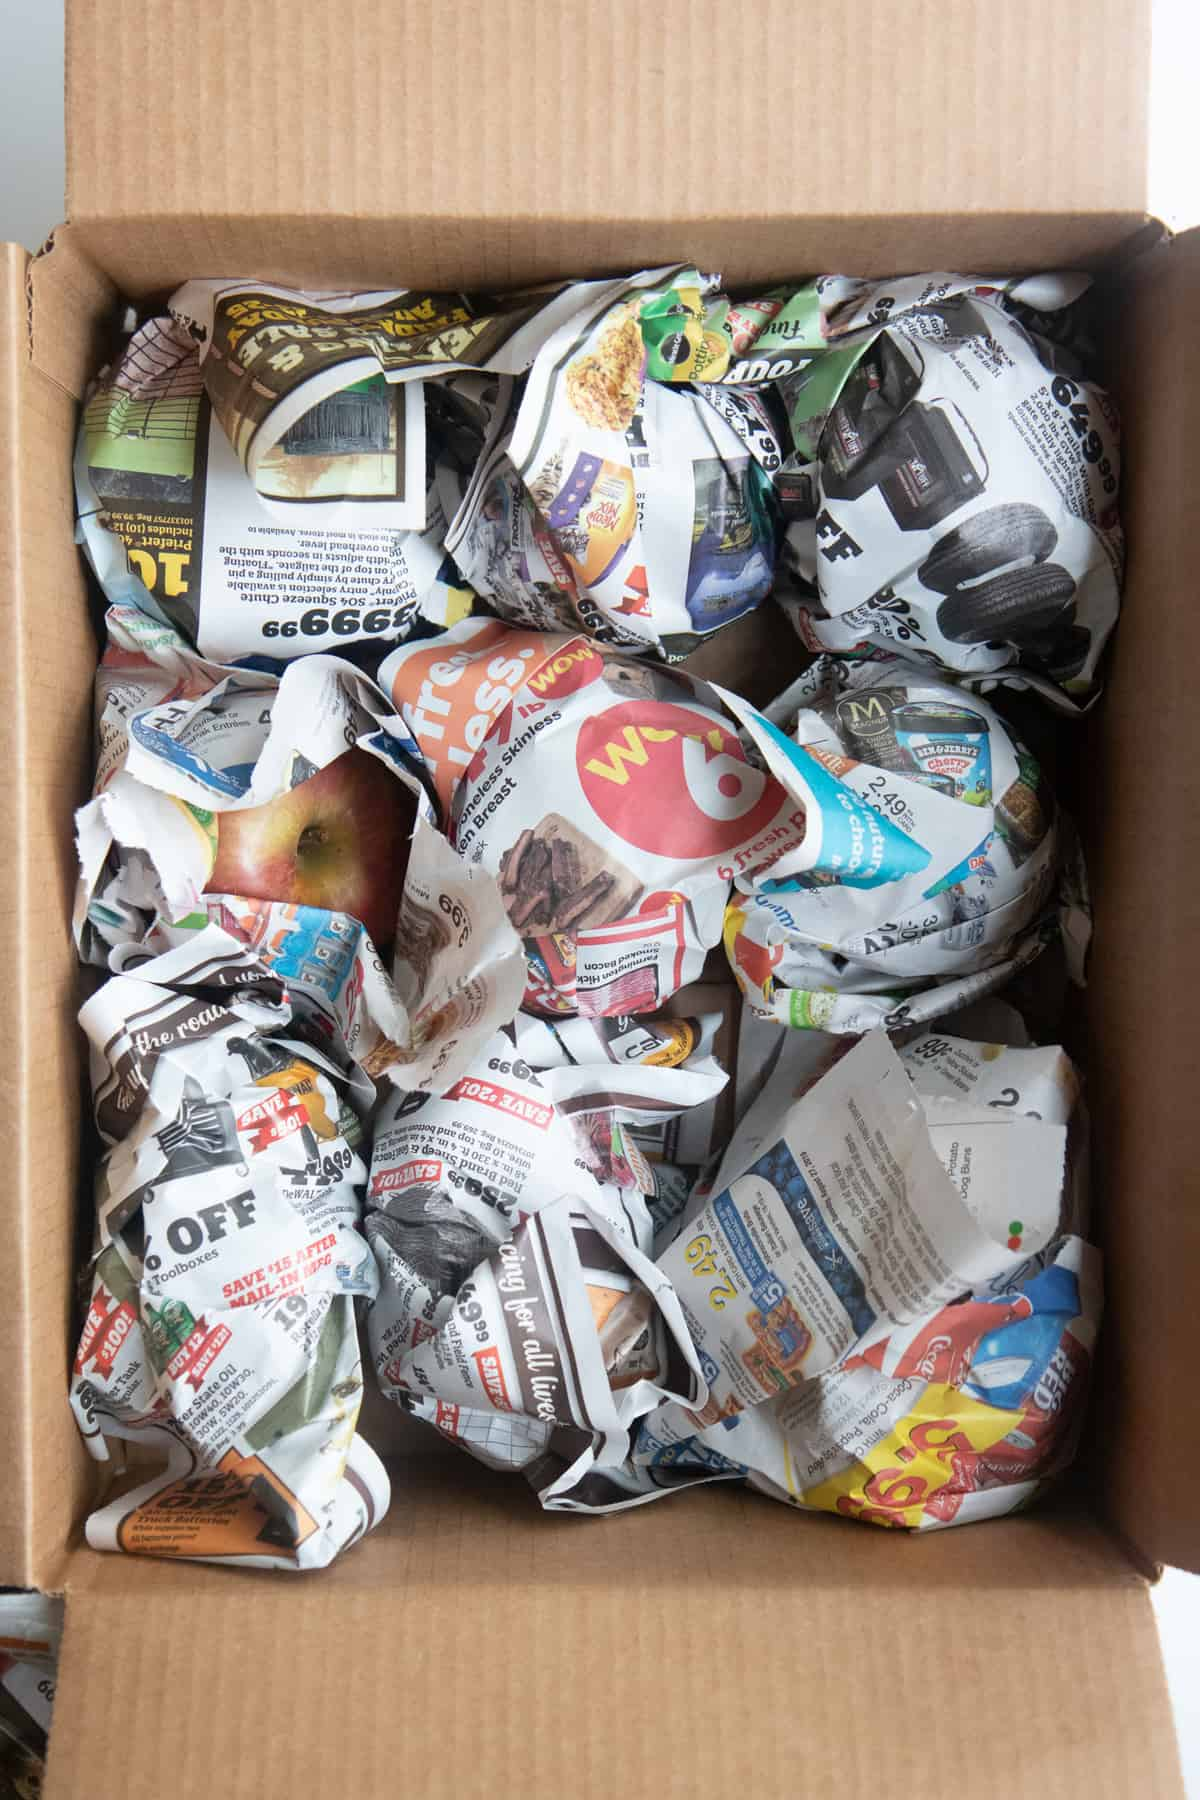 Bunches of newspaper wrapped around apples line a box.